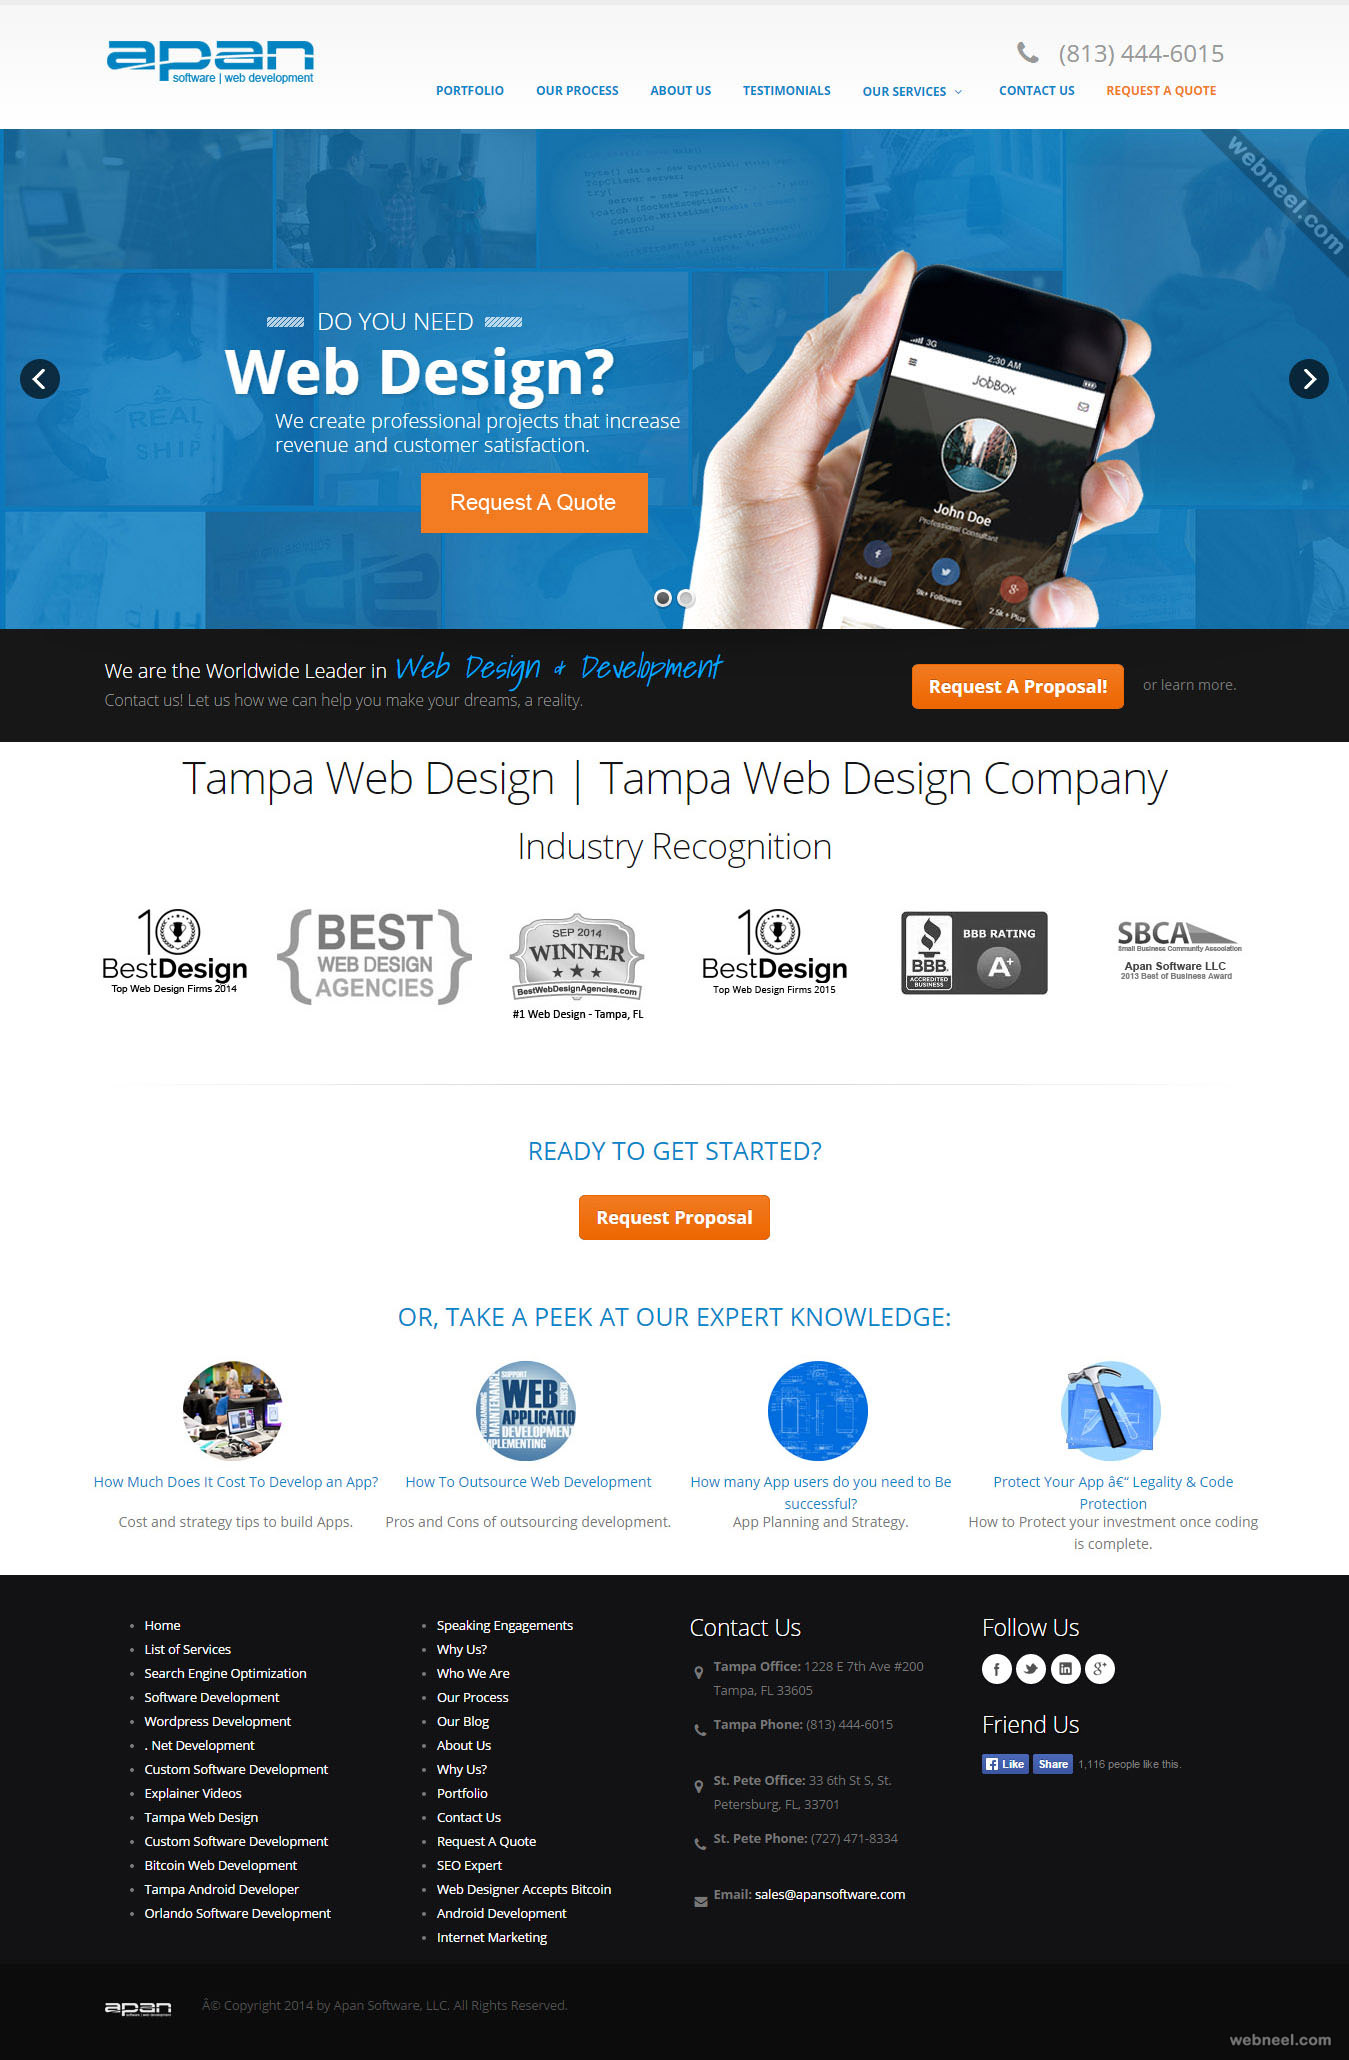 Top design company tampa web design florida 8 for Remodeling companies